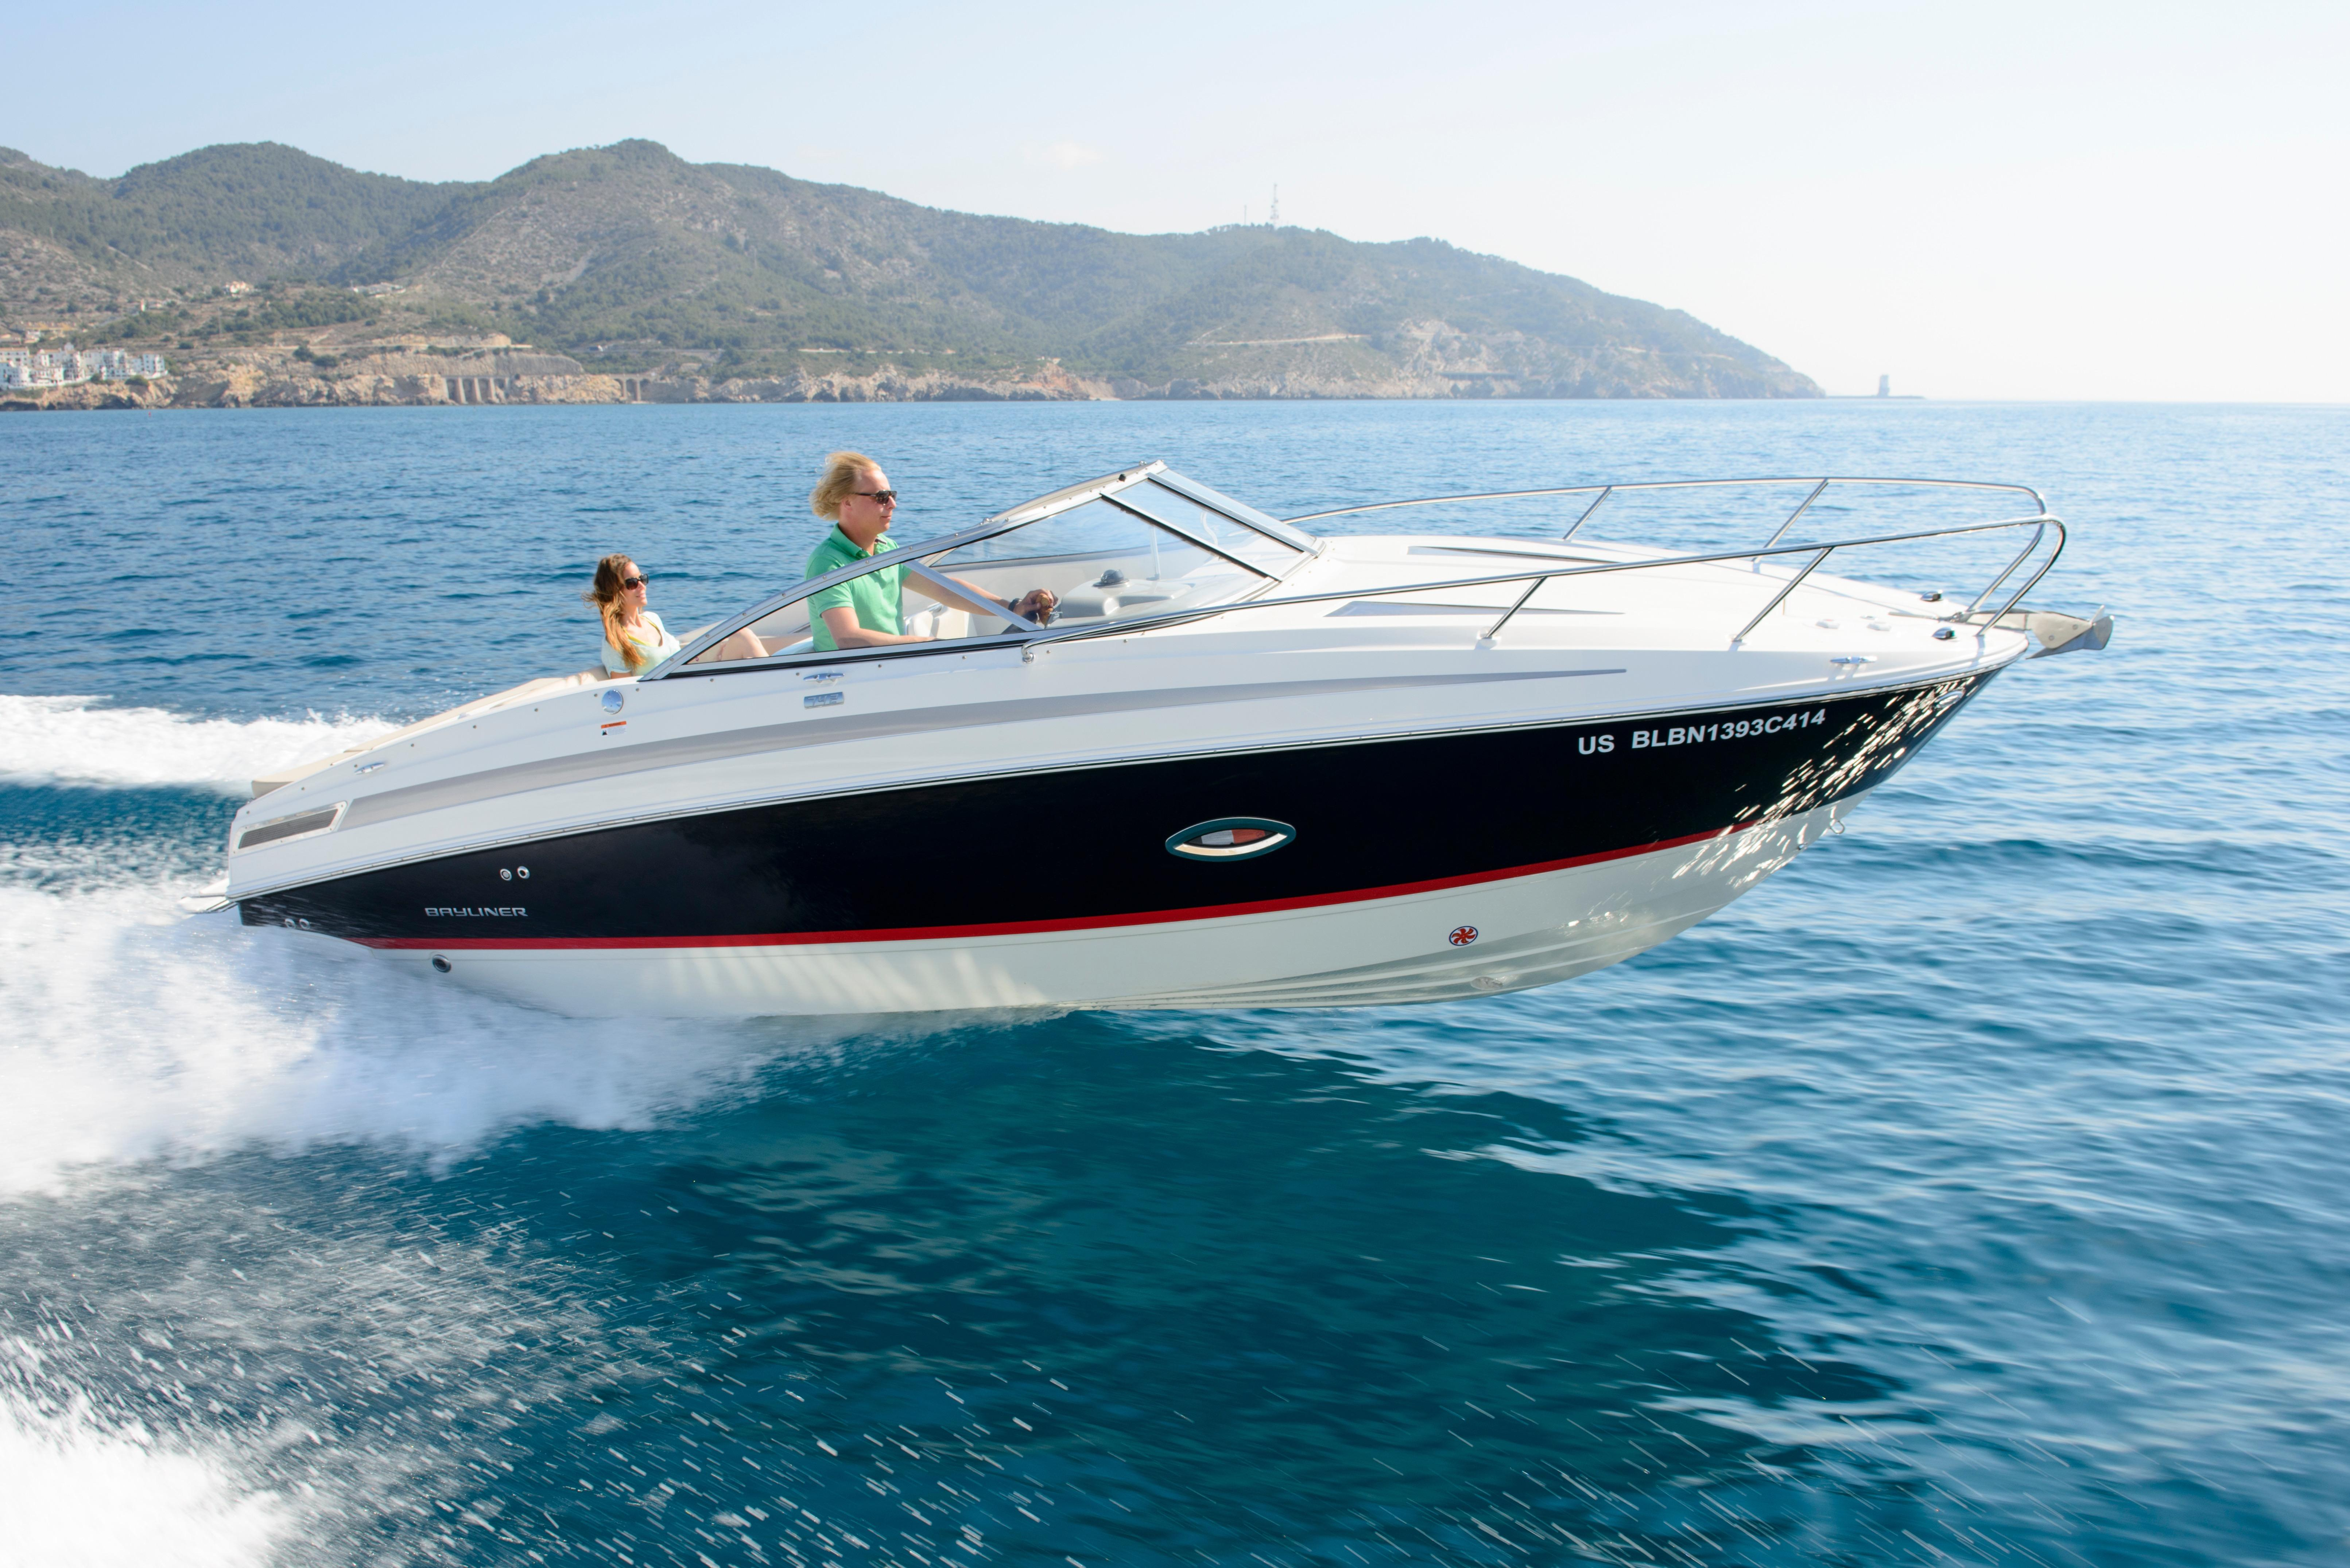 5264955_20150803052647354_1_XLARGE&w=520&h=346&t=1479125164000 search boats for sale yachtworld com 1988 bayliner 2655 wiring diagram at panicattacktreatment.co